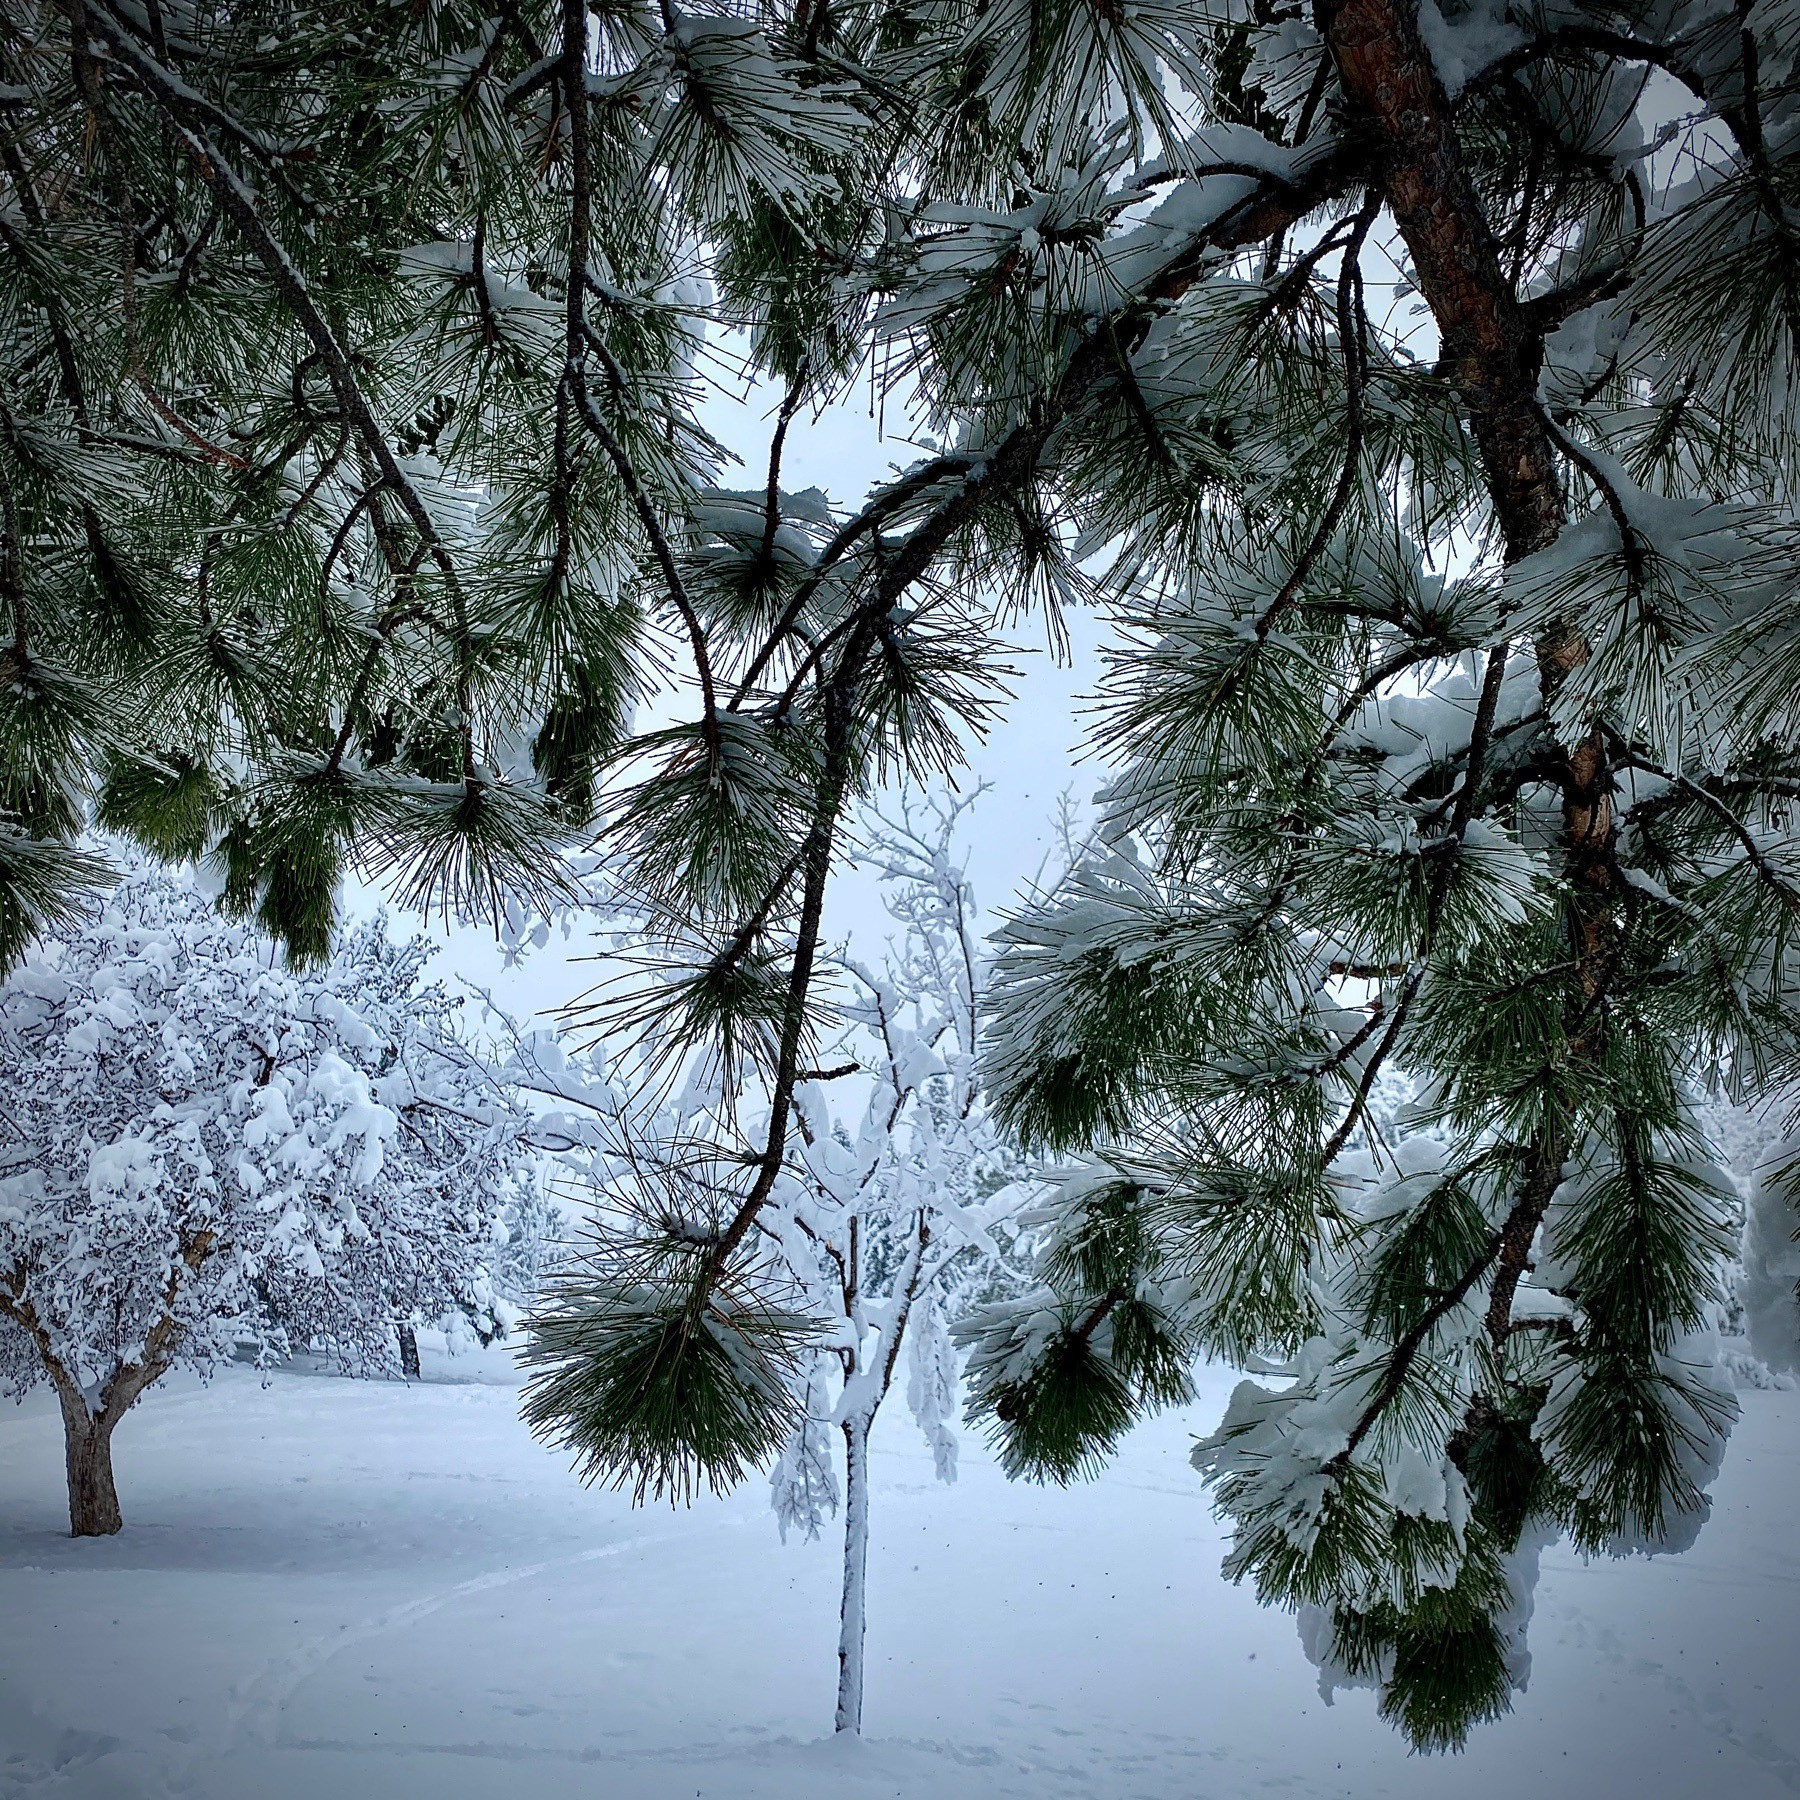 Pine tree branches obscuring wintery scene.